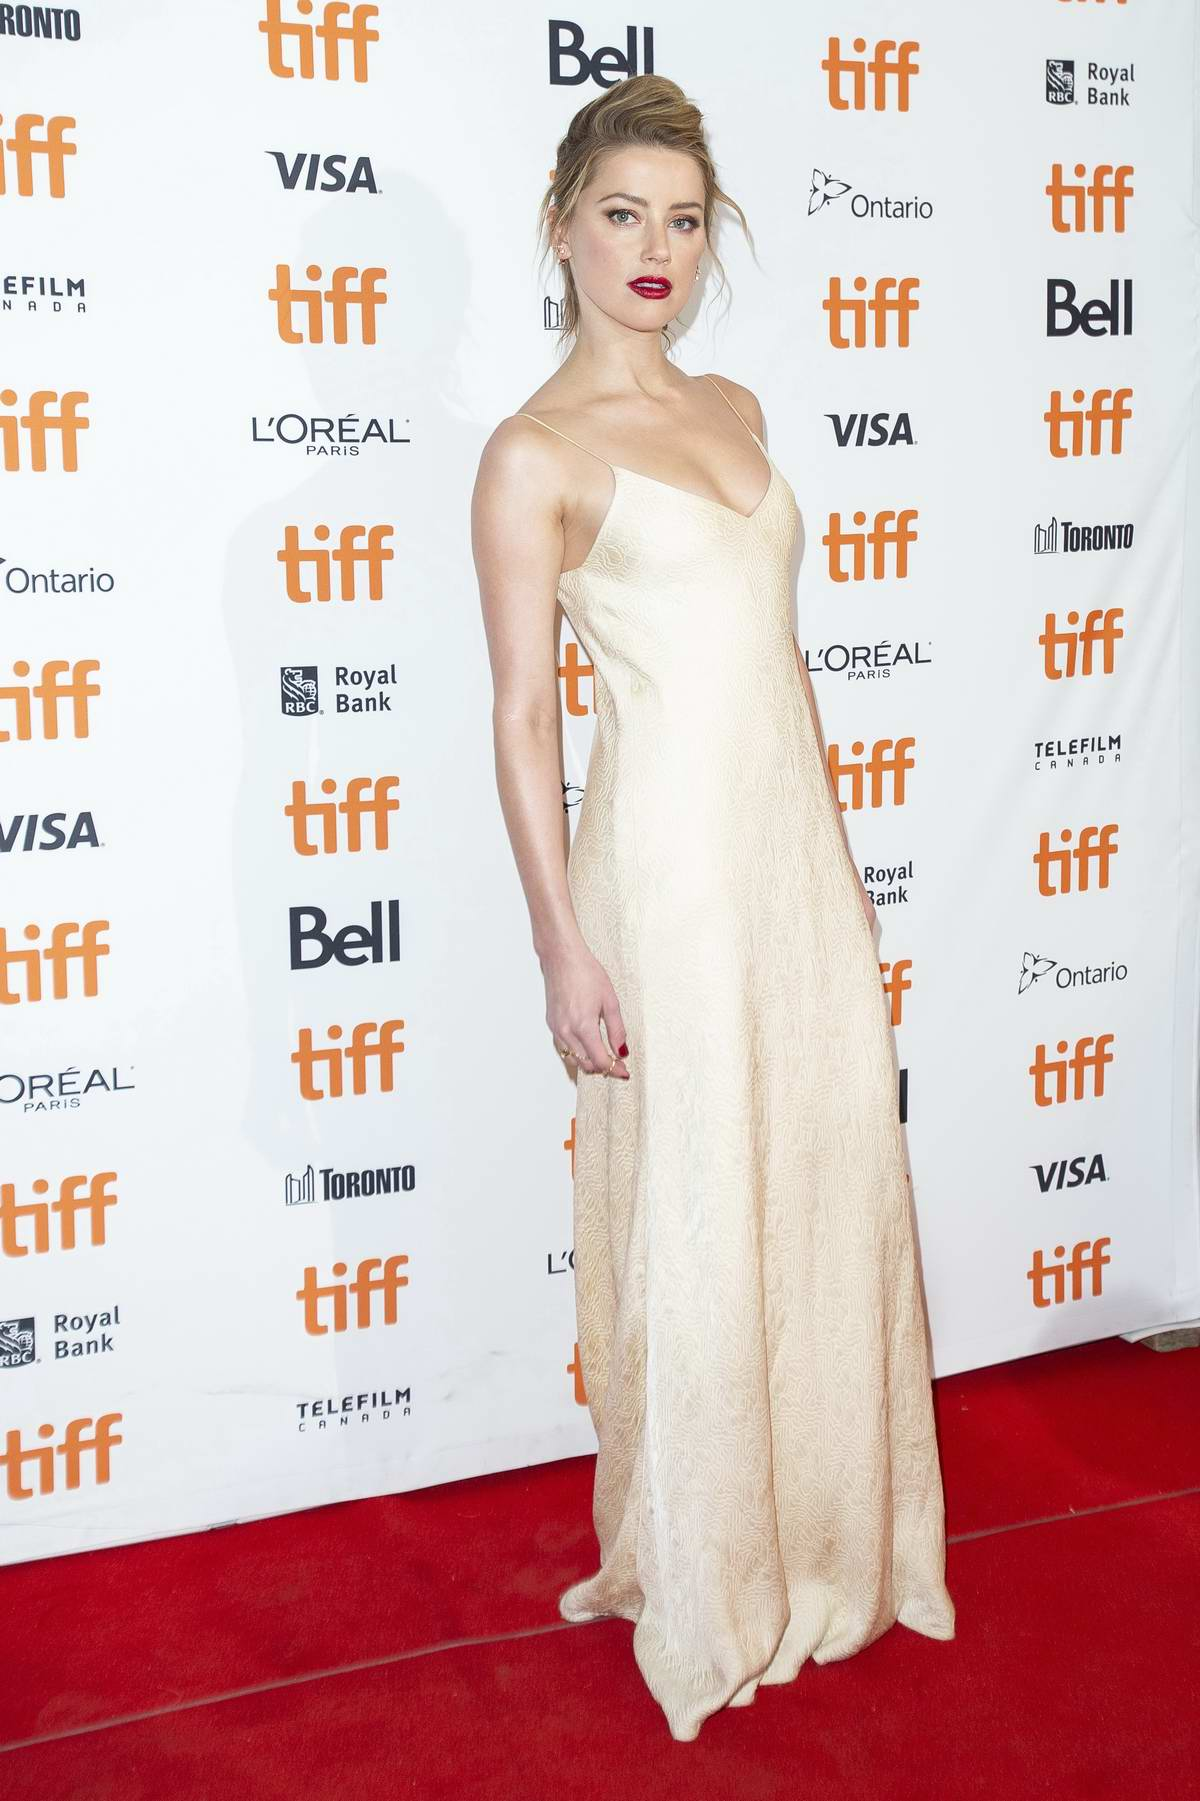 Amber Heard attends 'Her Smell' premiere during the Toronto International Film Festival (TIFF 2018) in Toronto, Canada